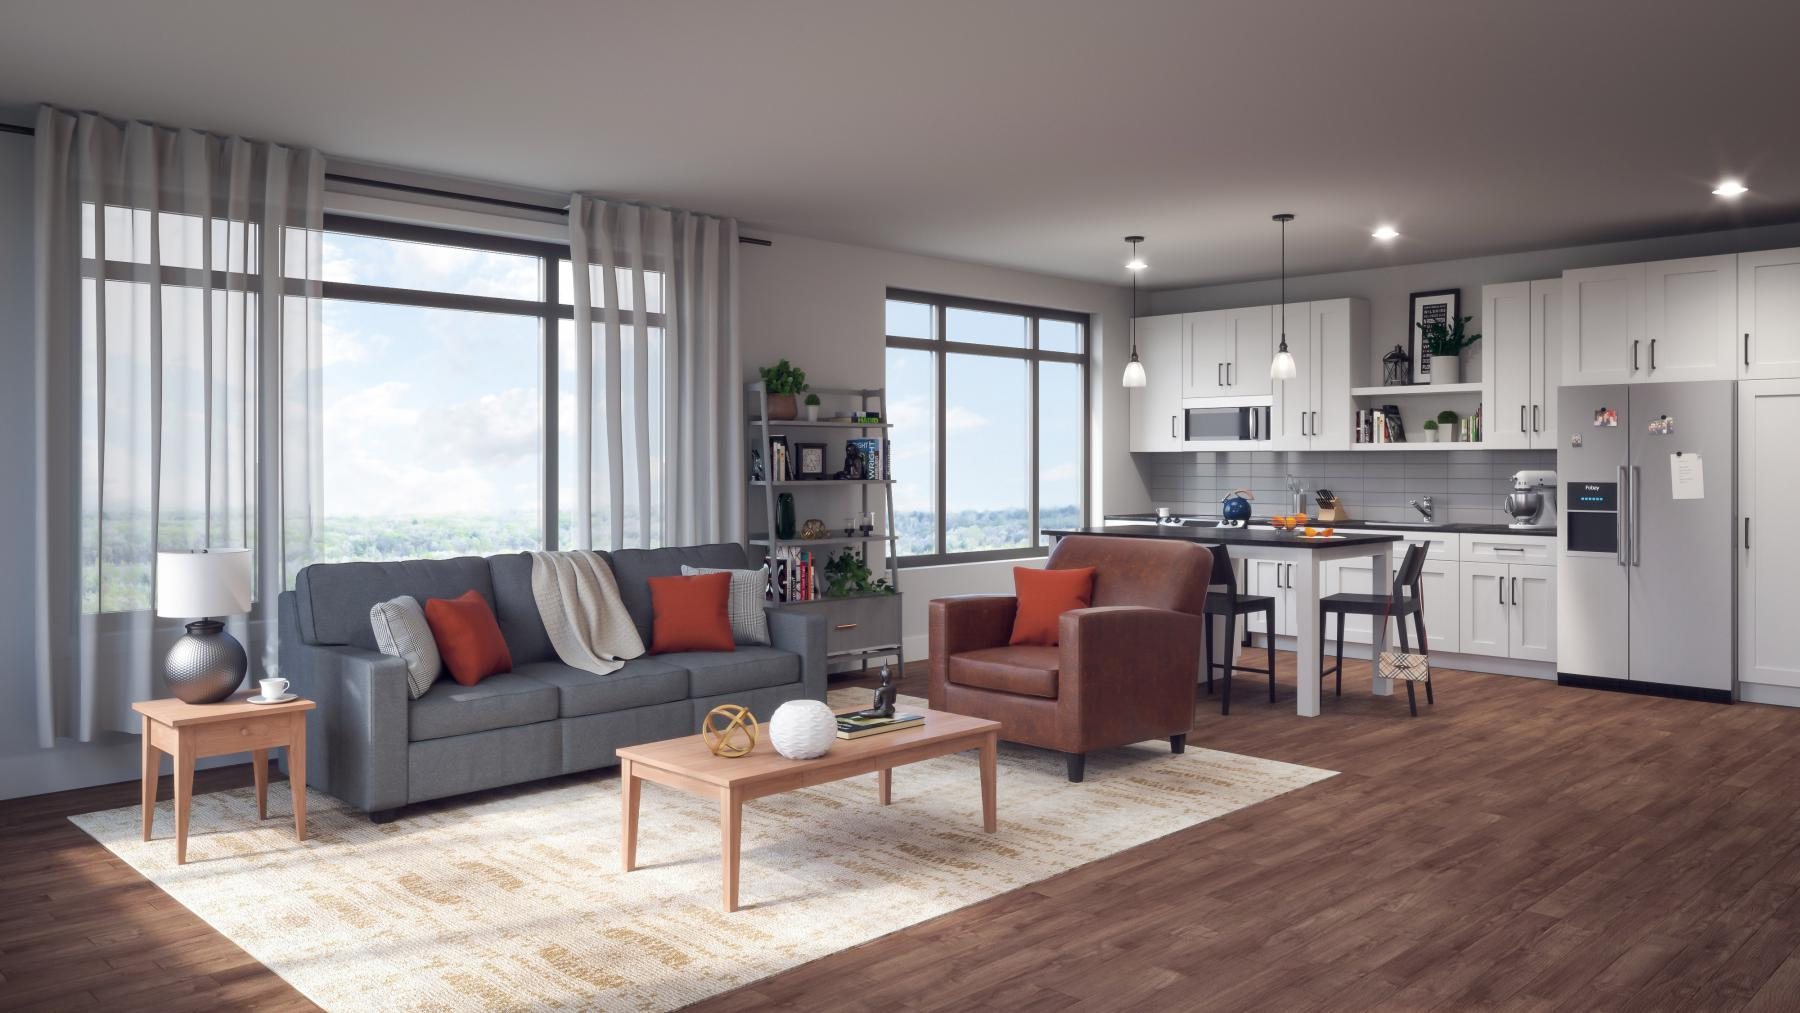 ULI 1722 Monroe Apartments Kitchen and Living Room Rendering